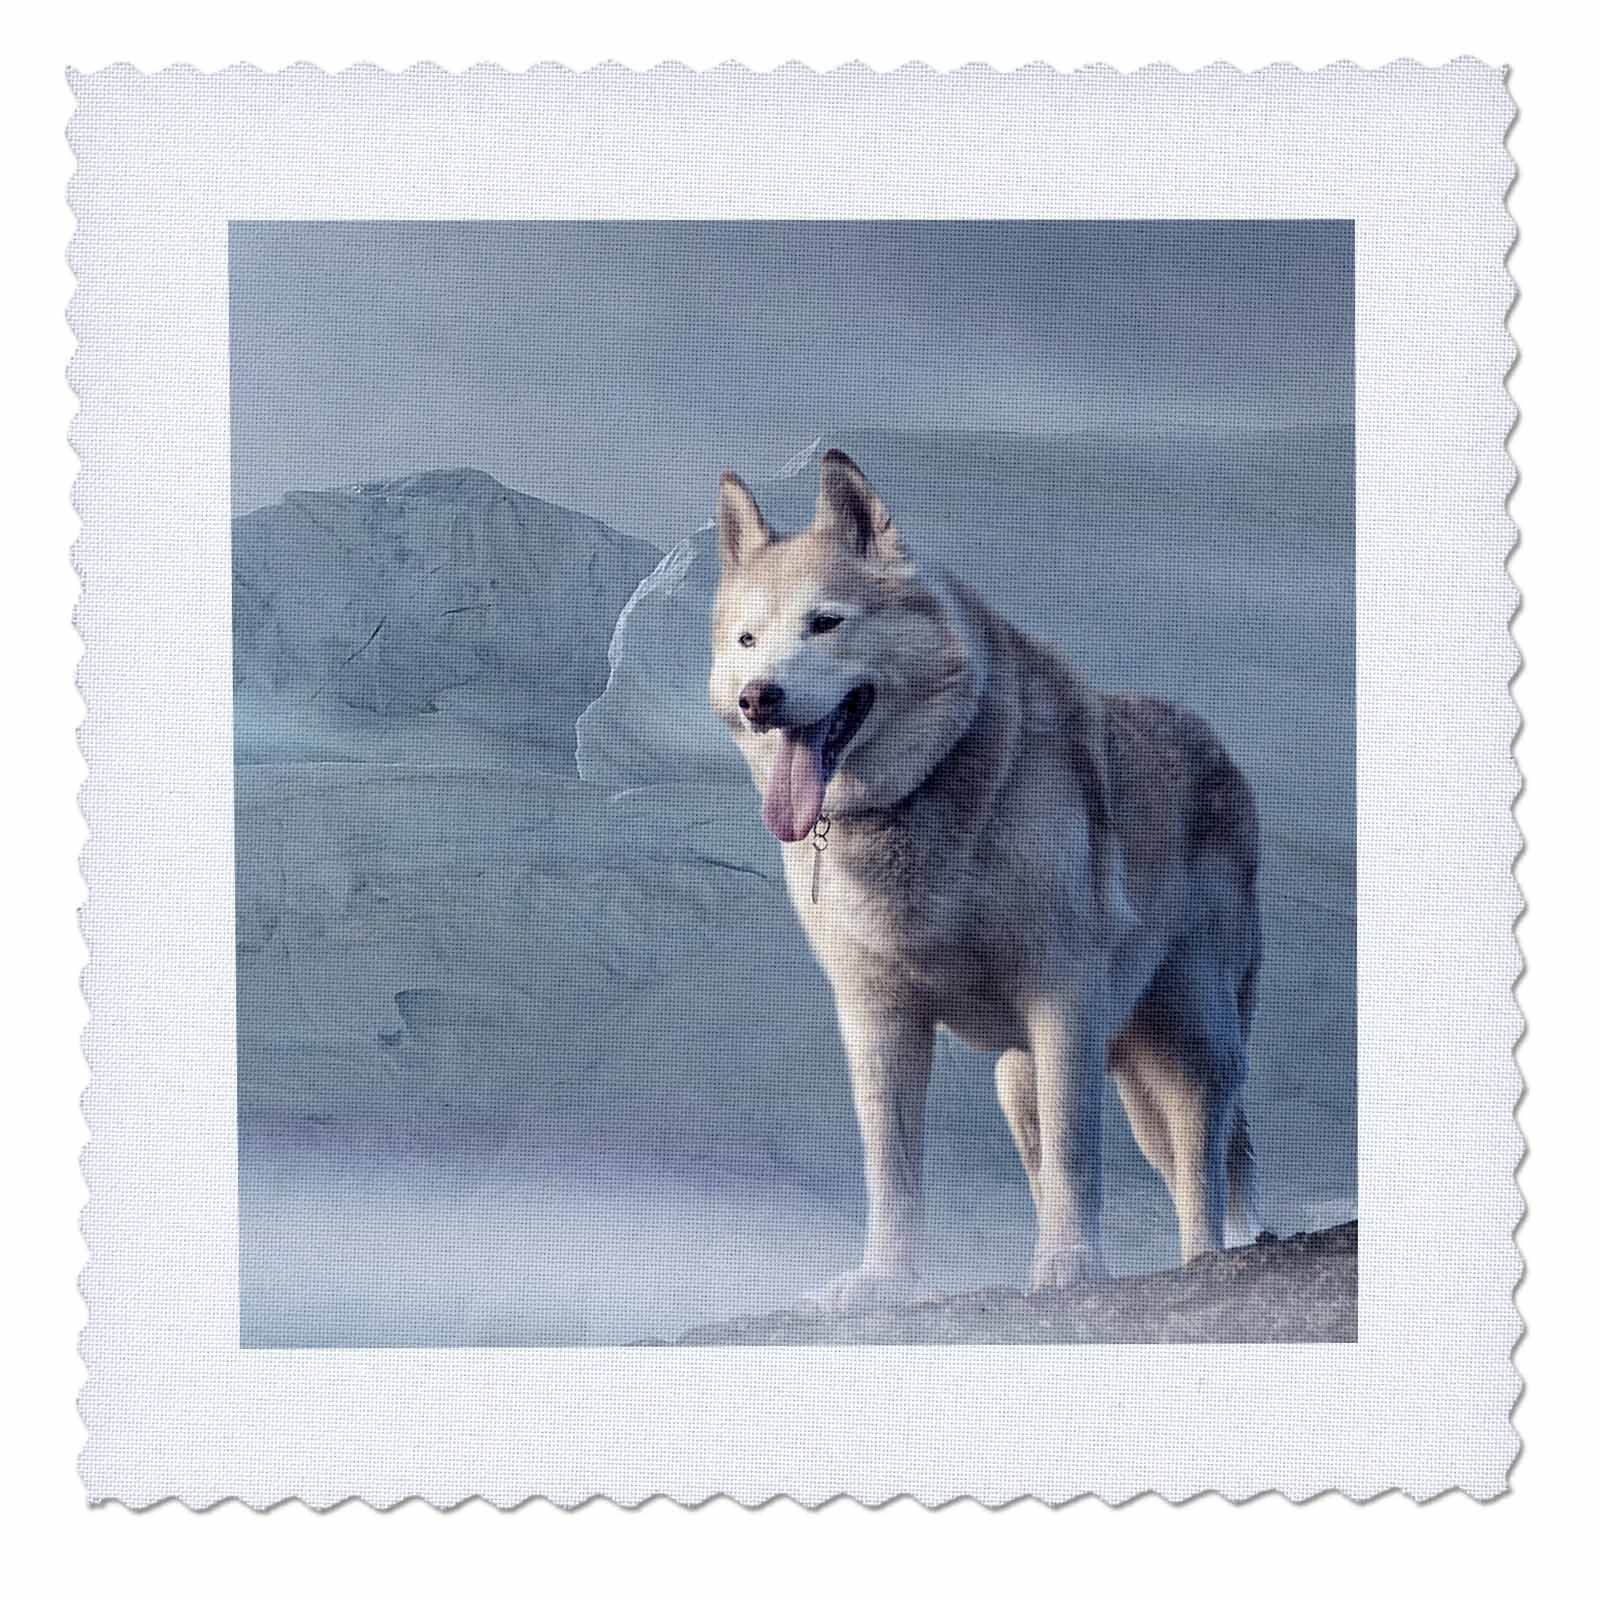 3dRose Sven Herkenrath Animals - Siberian Husky In The Snow Animal Dogs - 18x18 inch quilt square (qs_262461_7)